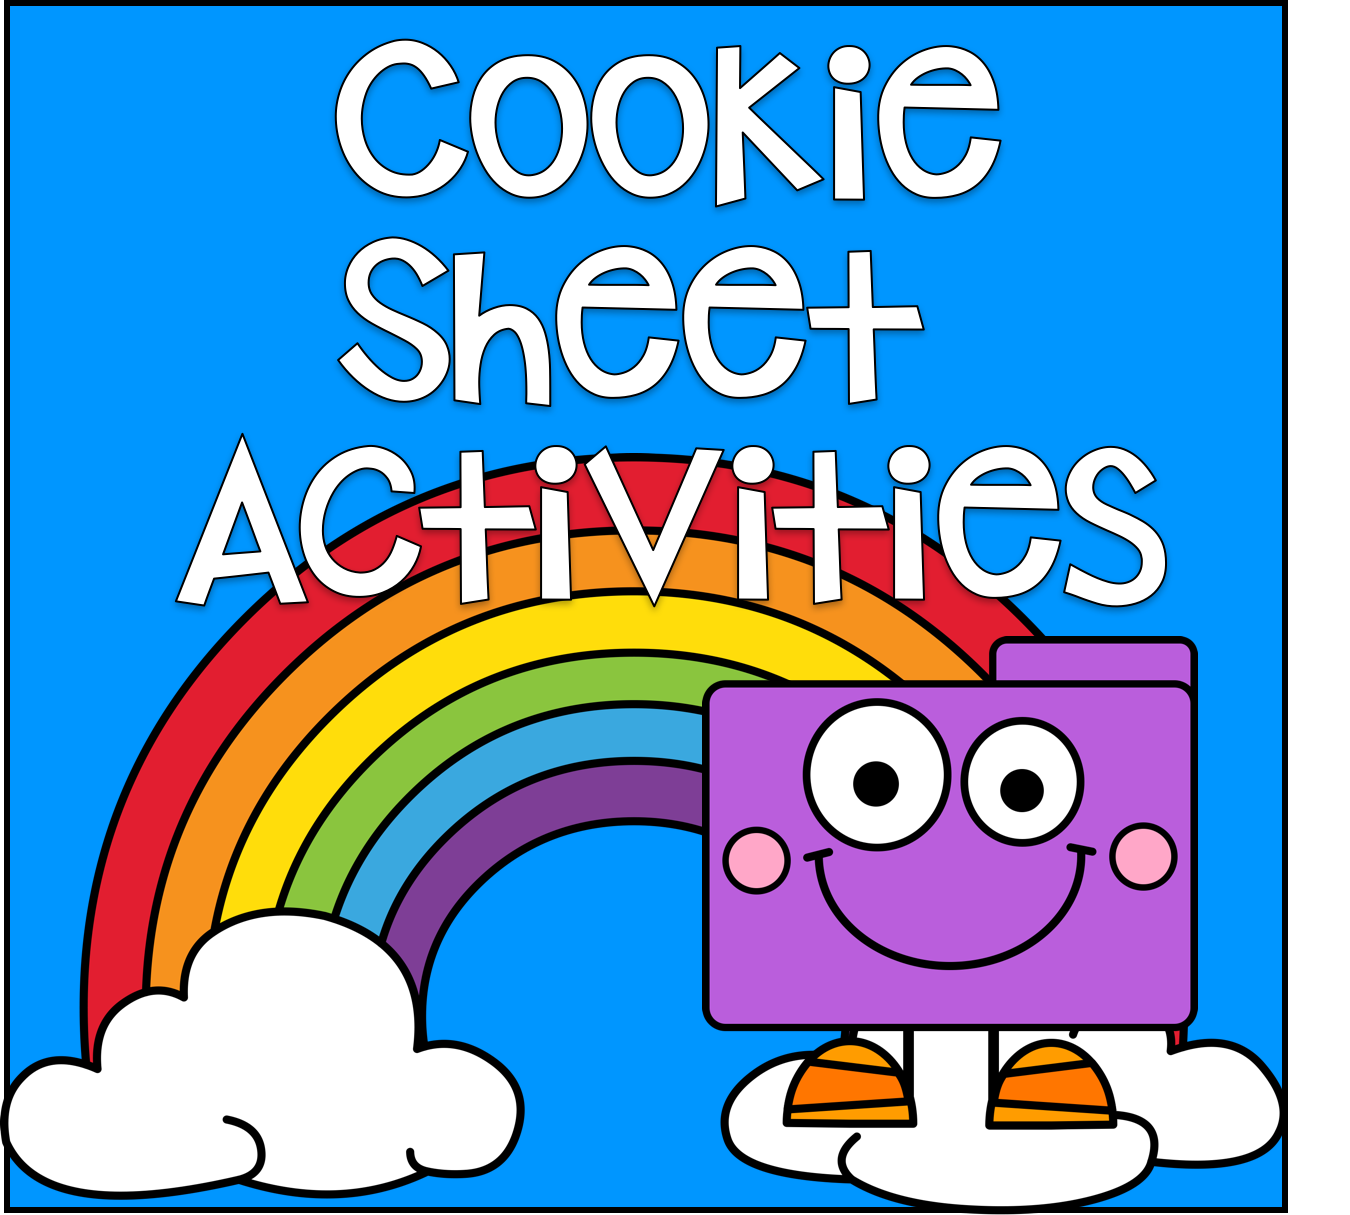 Cookie Sheet Activities